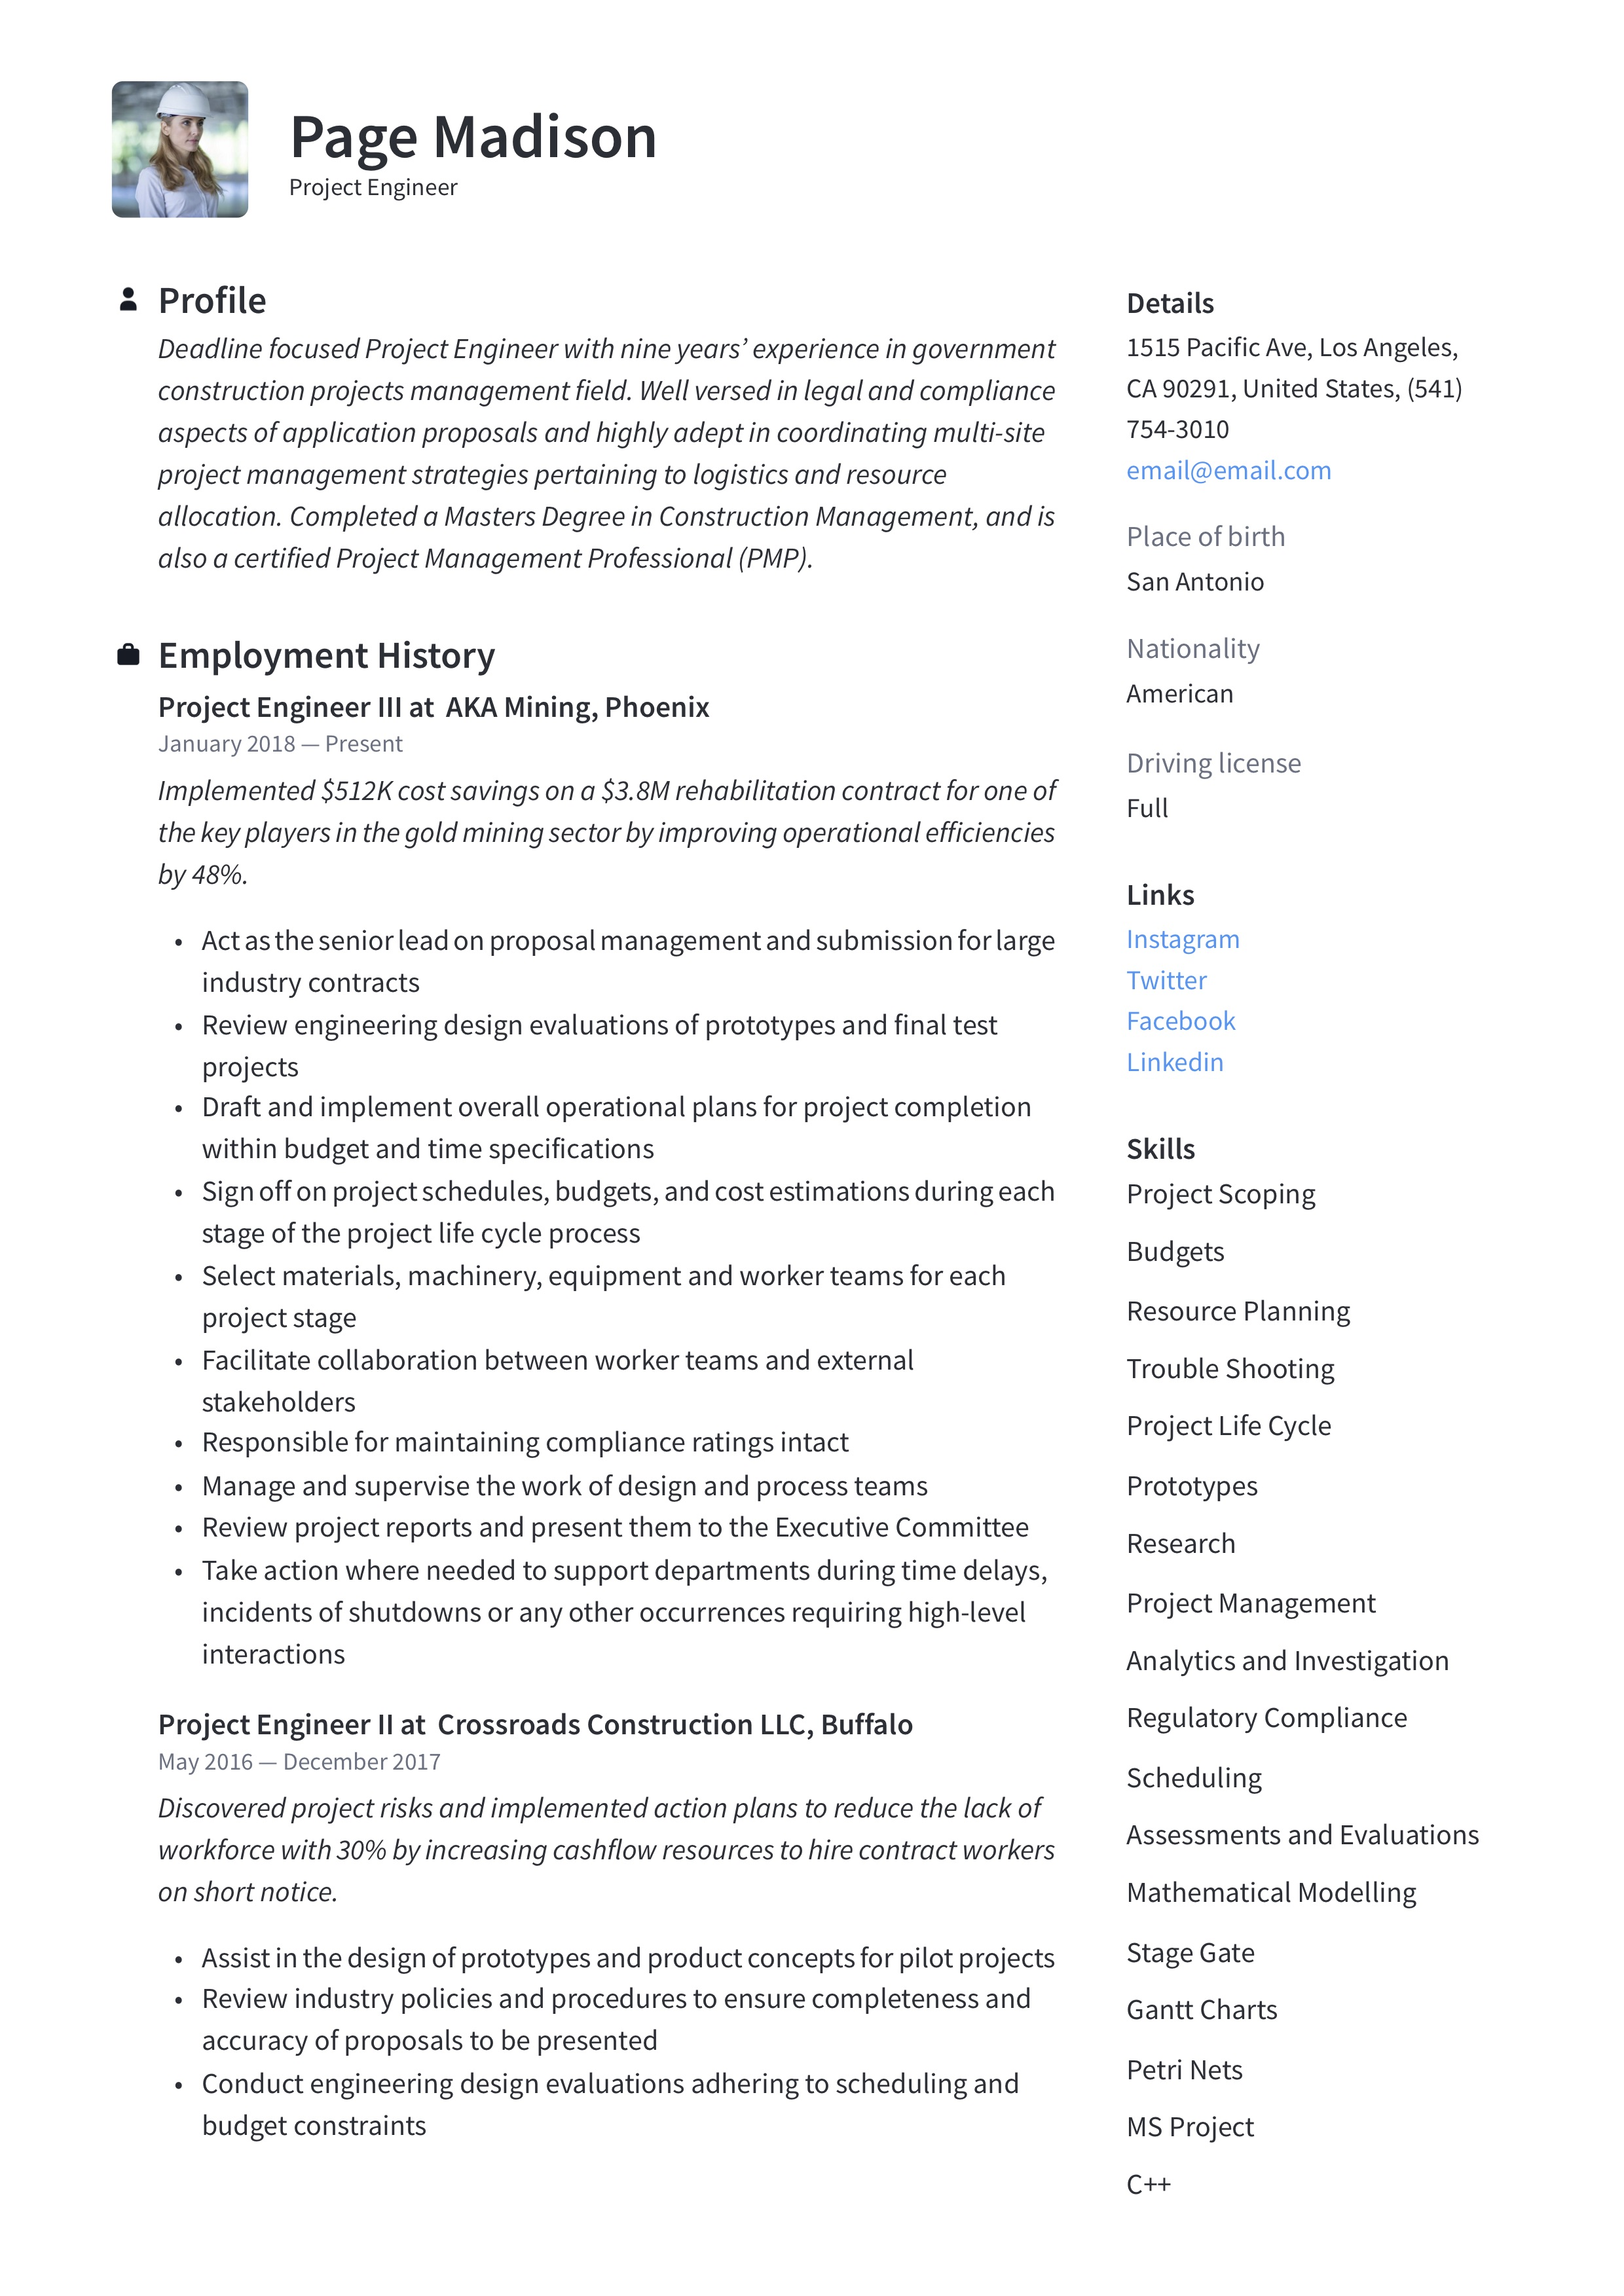 Project Engineer Resume Writing Guide 12 Resume Examples 2020